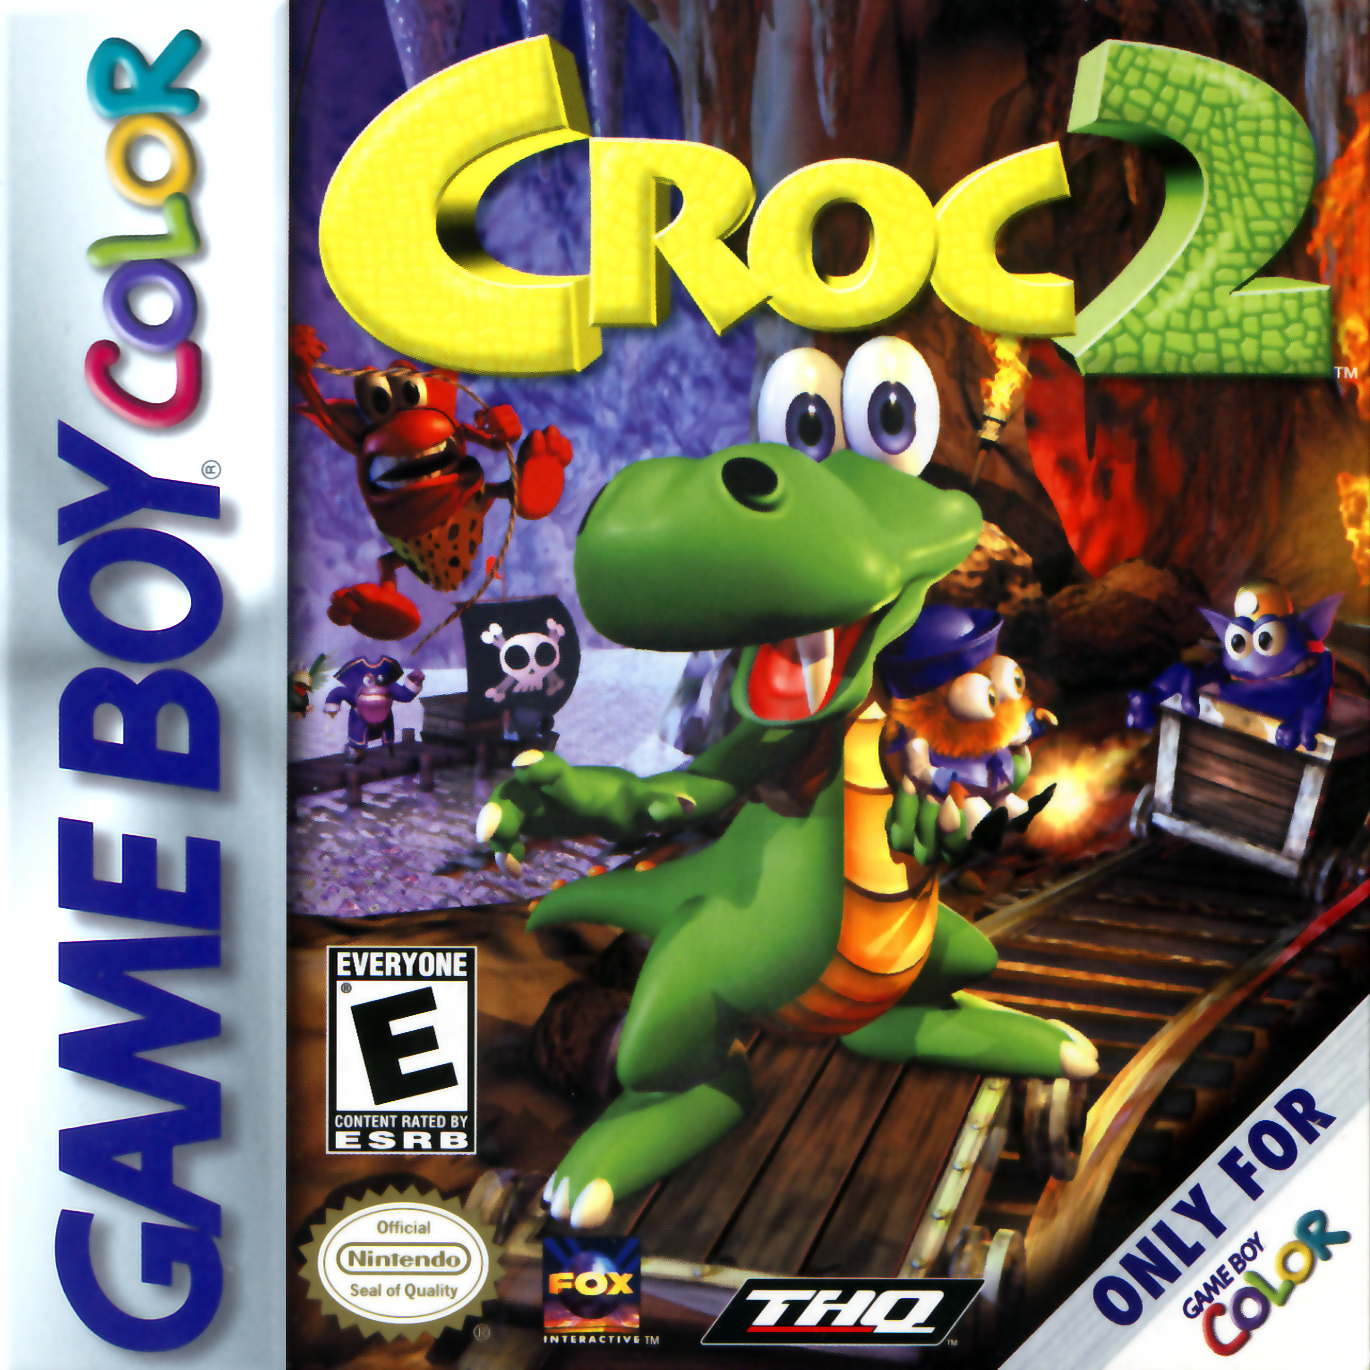 Croc 2 Nintendo Game Boy Color cover artwork